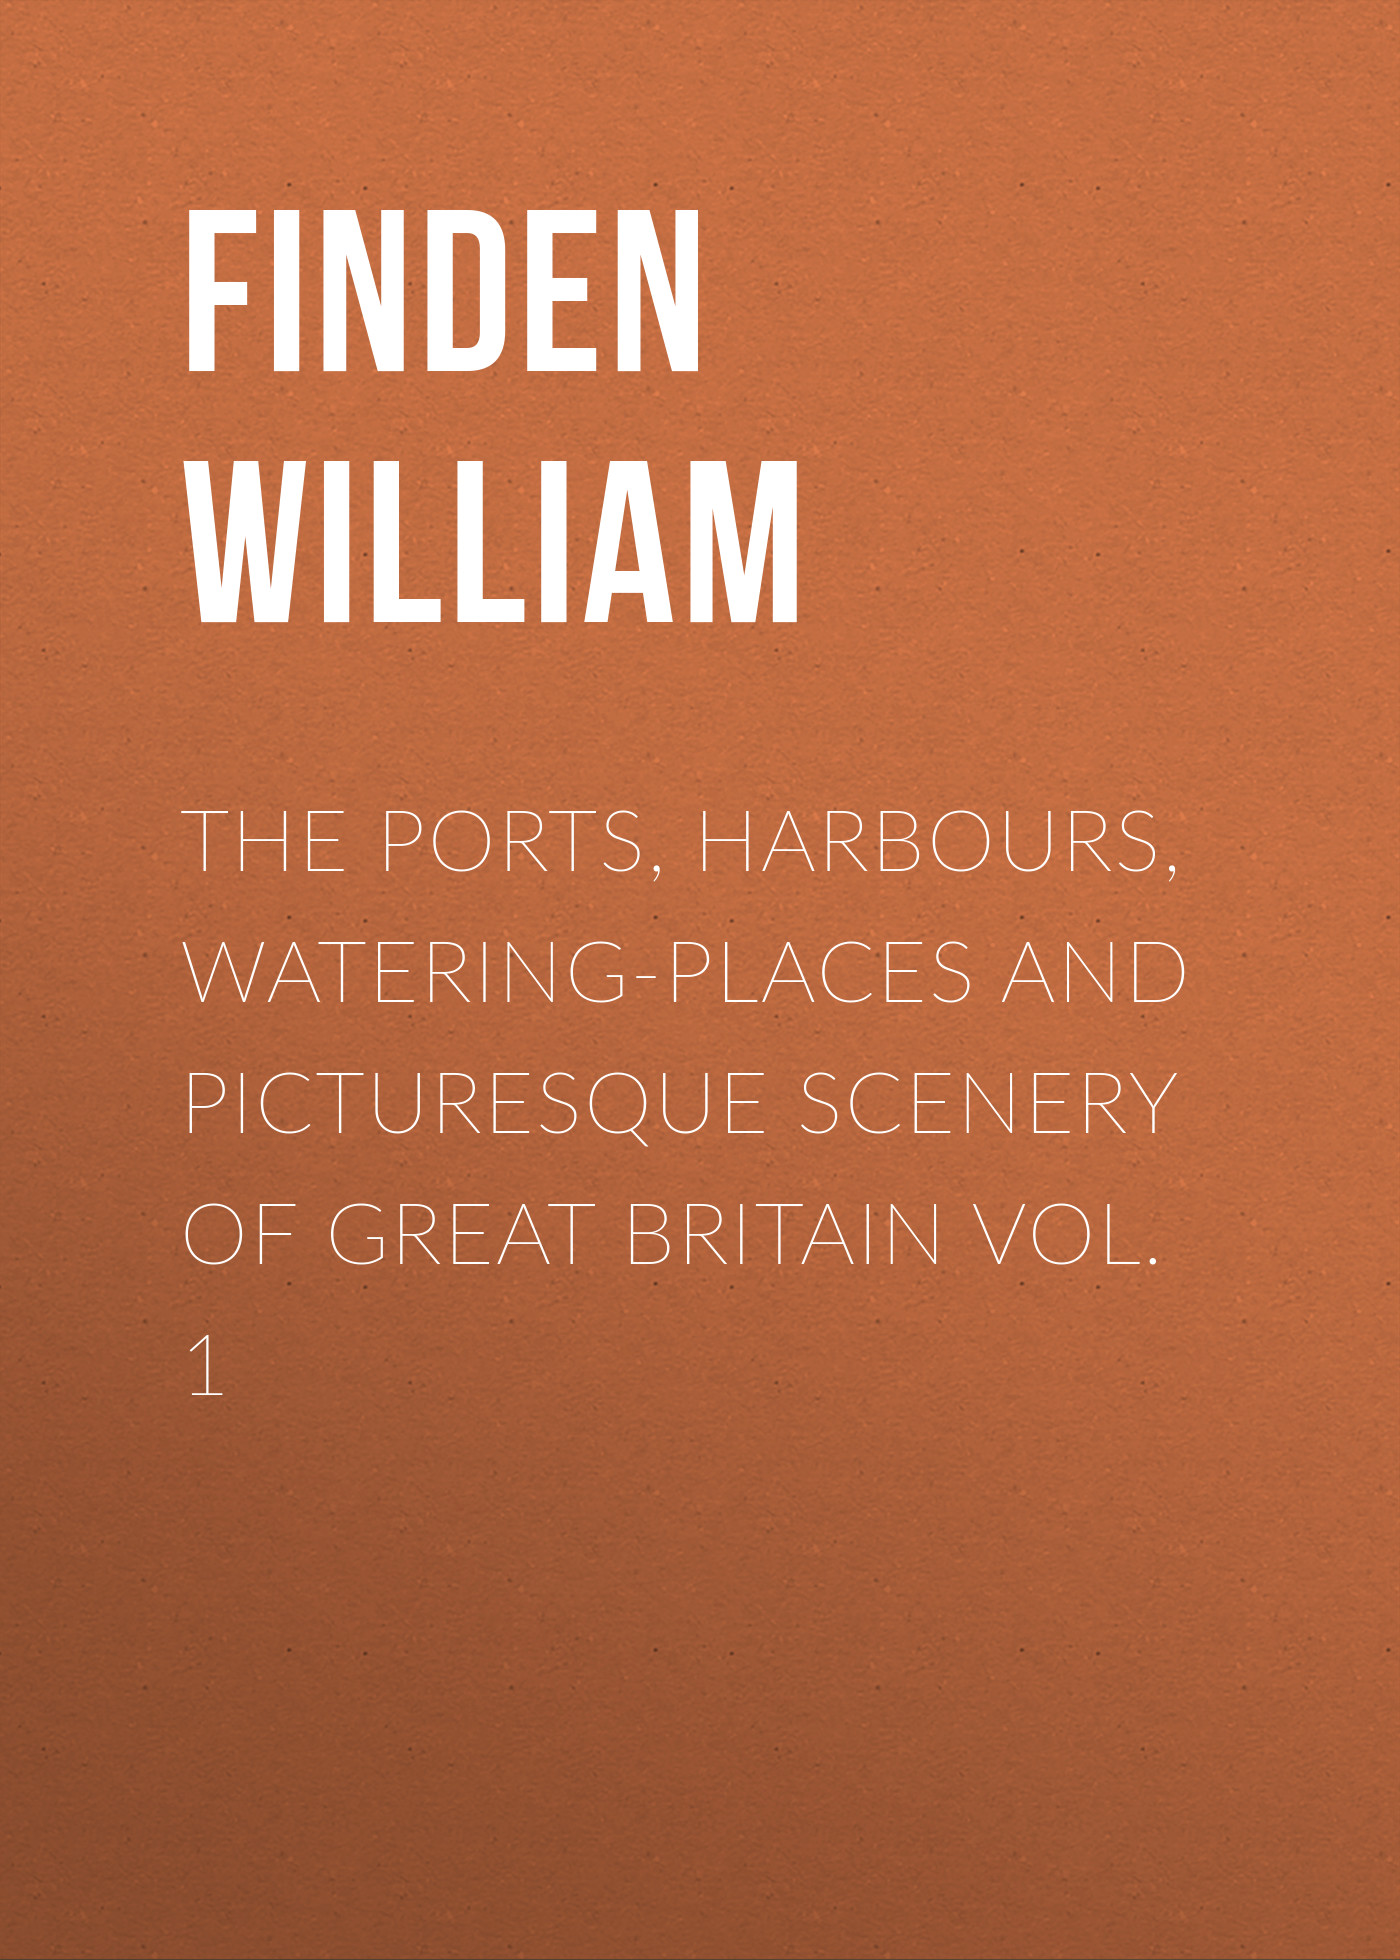 Finden William The Ports, Harbours, Watering-places and Picturesque Scenery of Great Britain Vol. 1 all the bright places